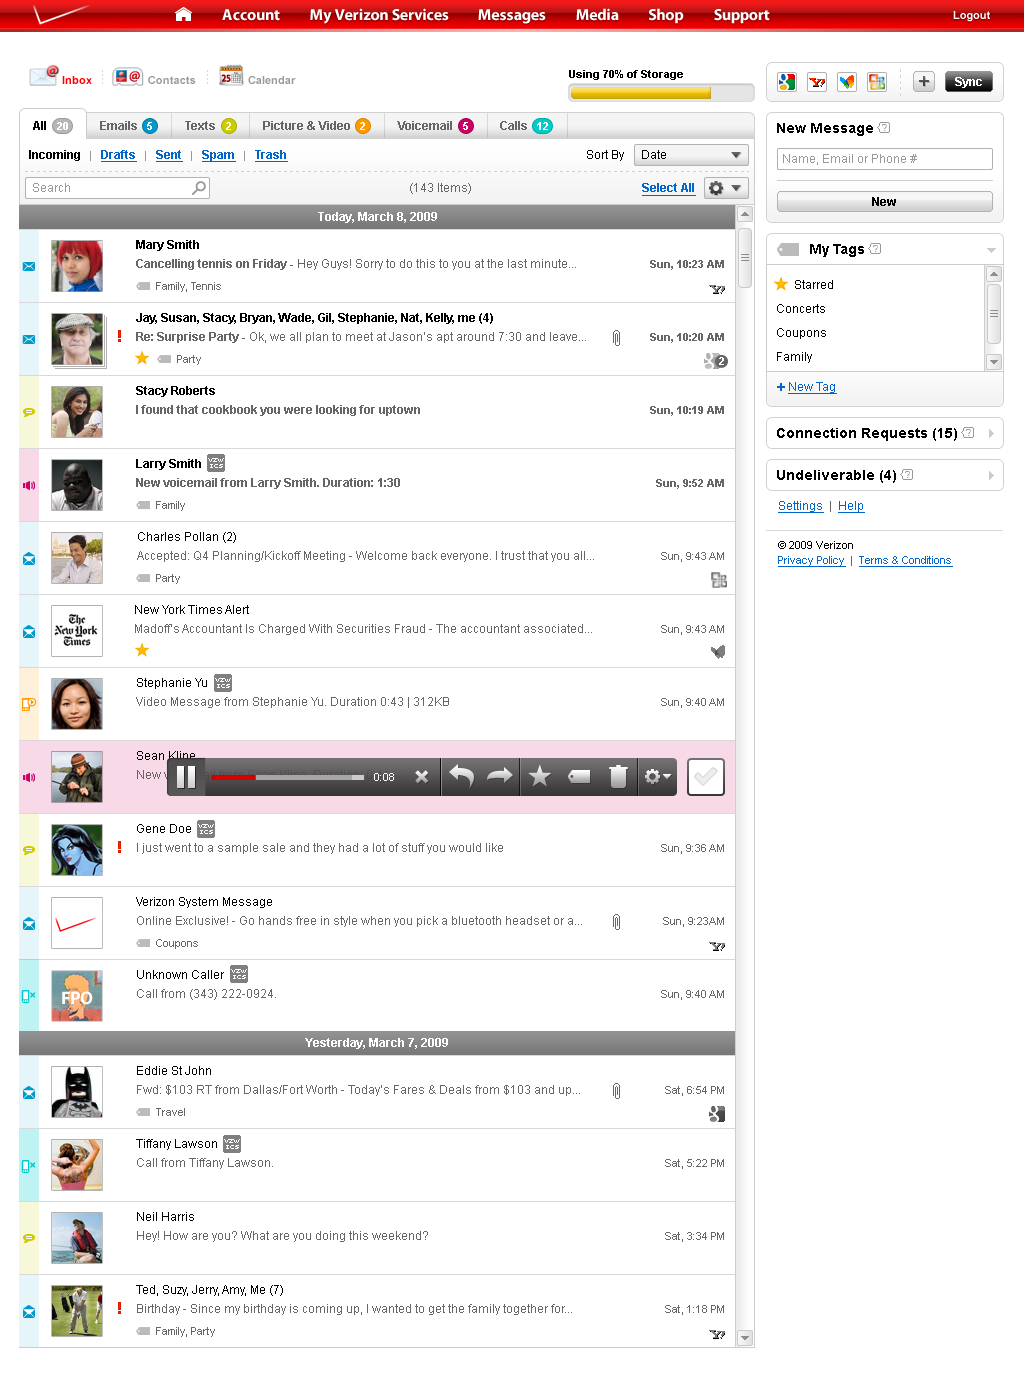 Sync & Connect Inbox